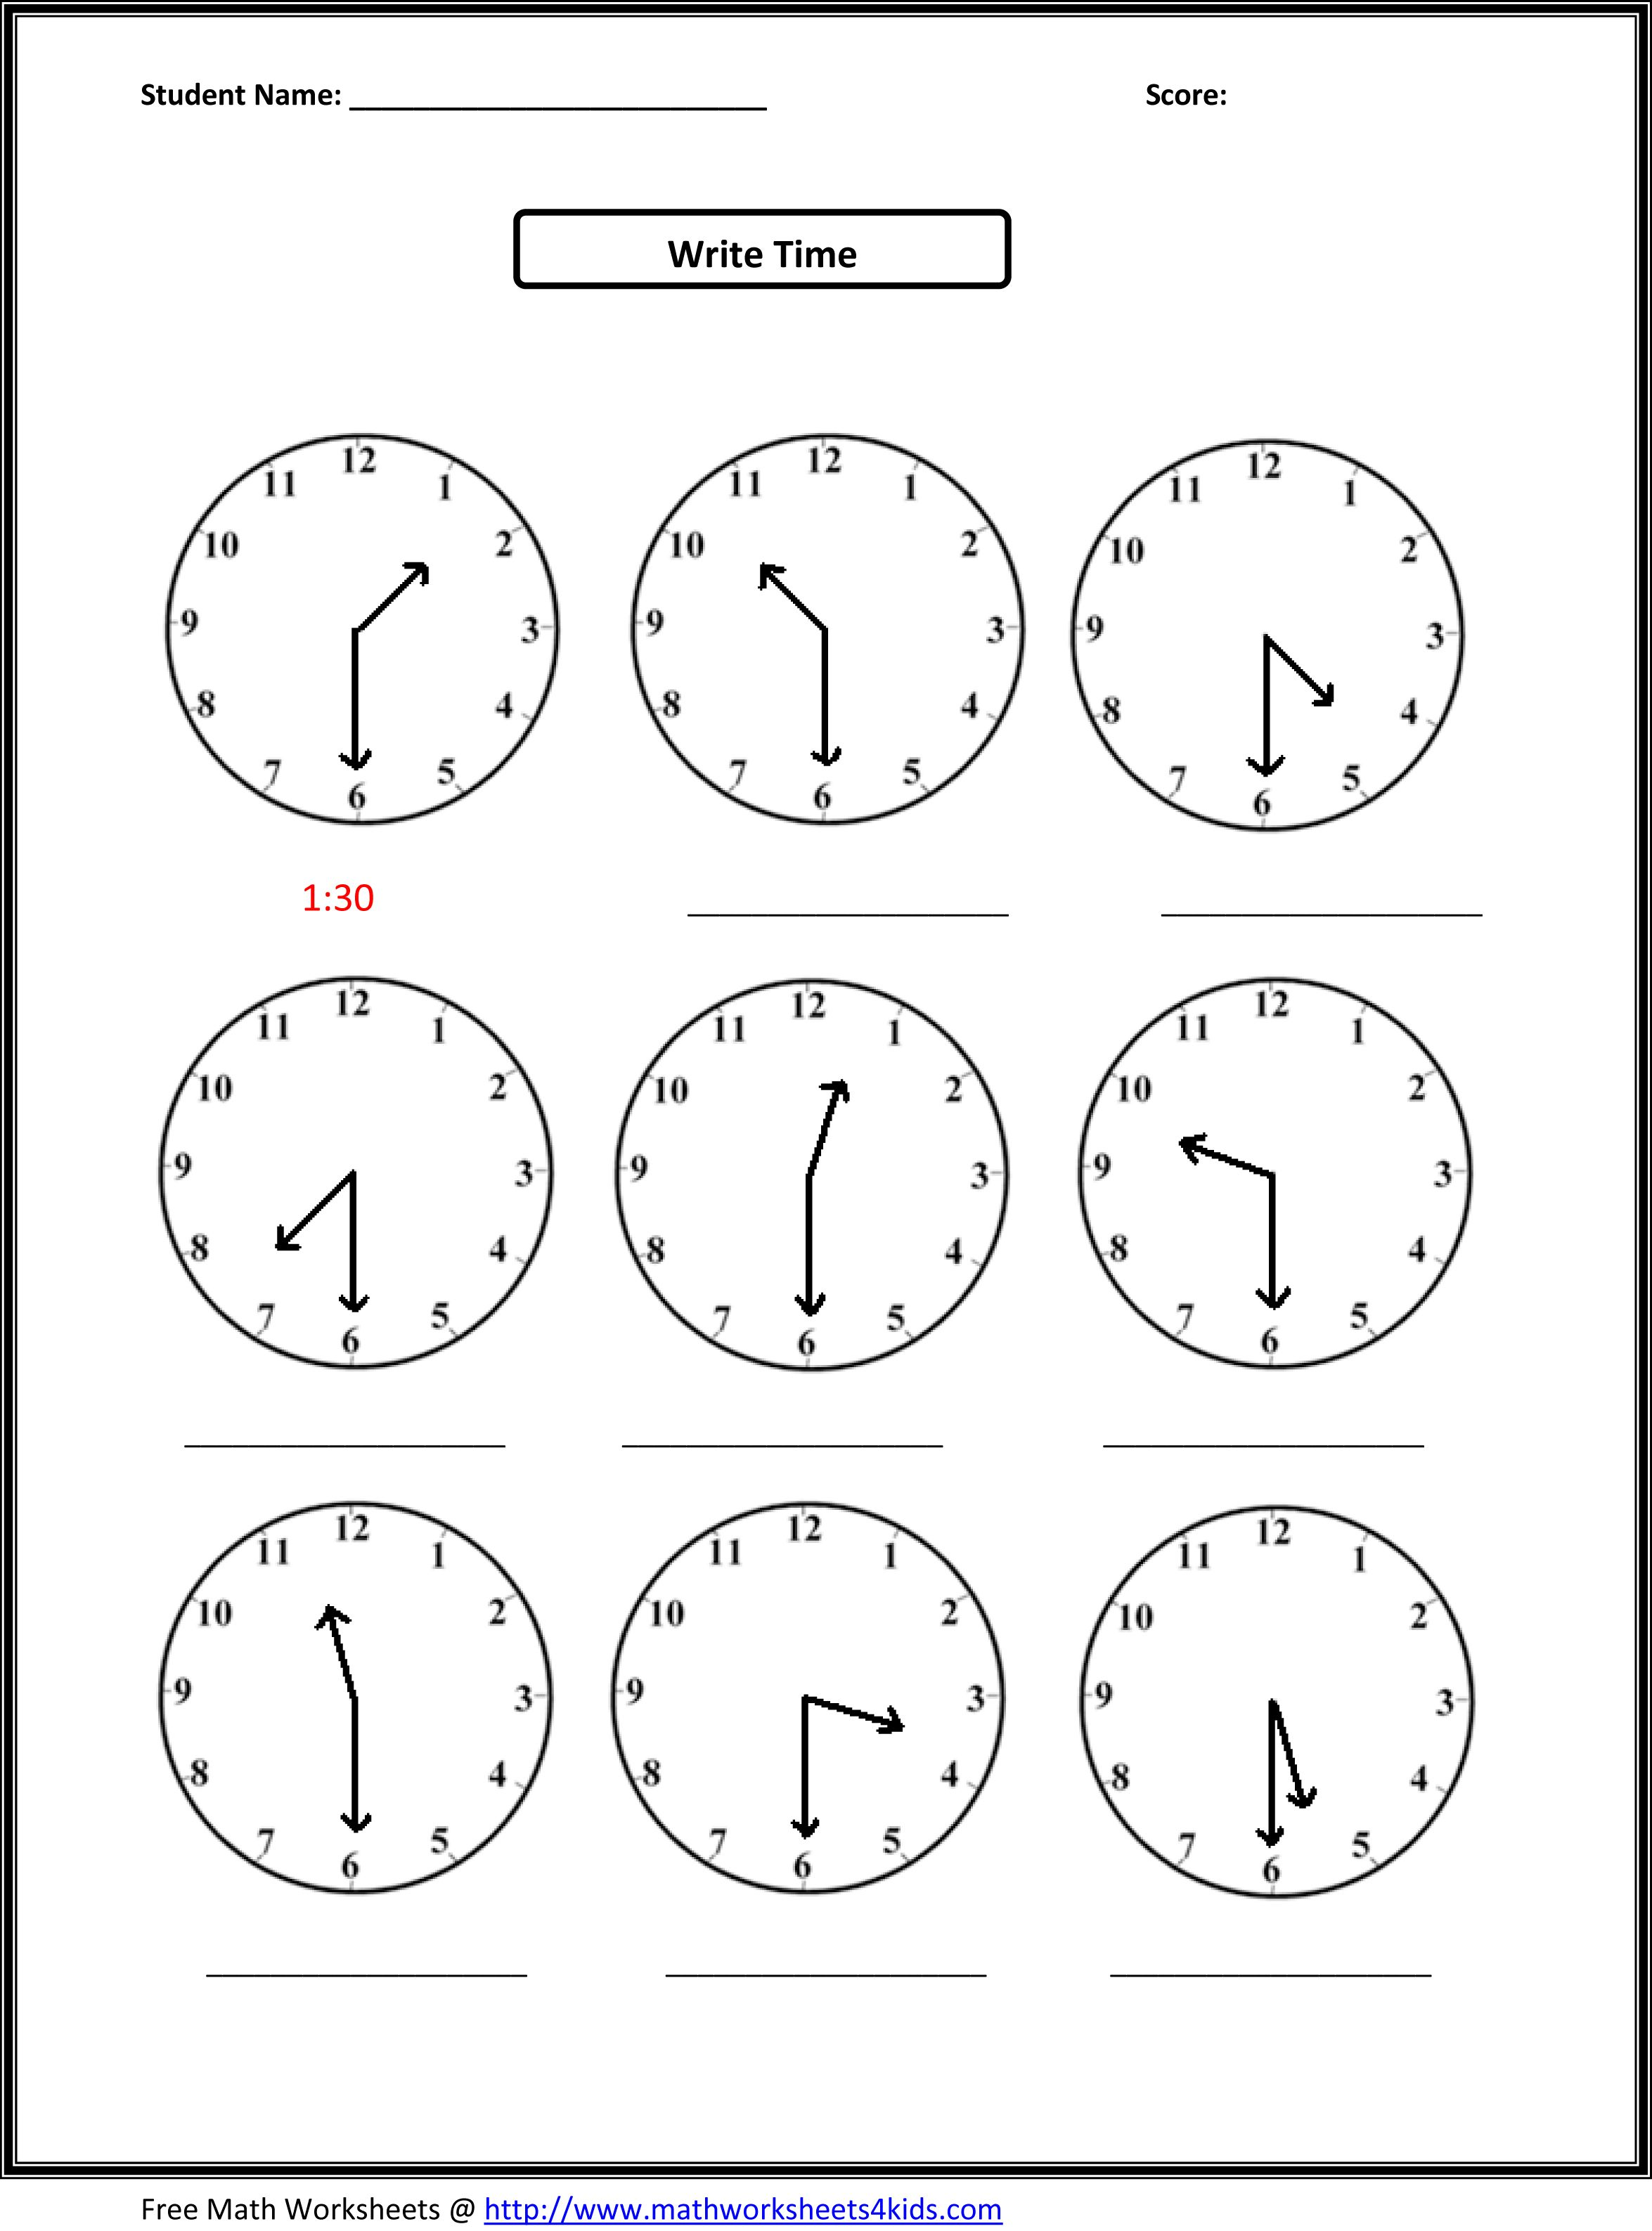 Weirdmailus  Outstanding Worksheet On Time For Grade   Reocurent With Magnificent Free Printable Telling Time Worksheets Nd Grade  Reocurent With Astonishing Long Division Worksheets For Th Graders Also Free Printable Comprehension Worksheets For Grade  In Addition Worksheet For Prek And Seahorse Worksheets As Well As Worksheet Writing And Balancing Chemical Reactions Answers Additionally Skip Counting By Twos Worksheets From Reocurentcom With Weirdmailus  Magnificent Worksheet On Time For Grade   Reocurent With Astonishing Free Printable Telling Time Worksheets Nd Grade  Reocurent And Outstanding Long Division Worksheets For Th Graders Also Free Printable Comprehension Worksheets For Grade  In Addition Worksheet For Prek From Reocurentcom